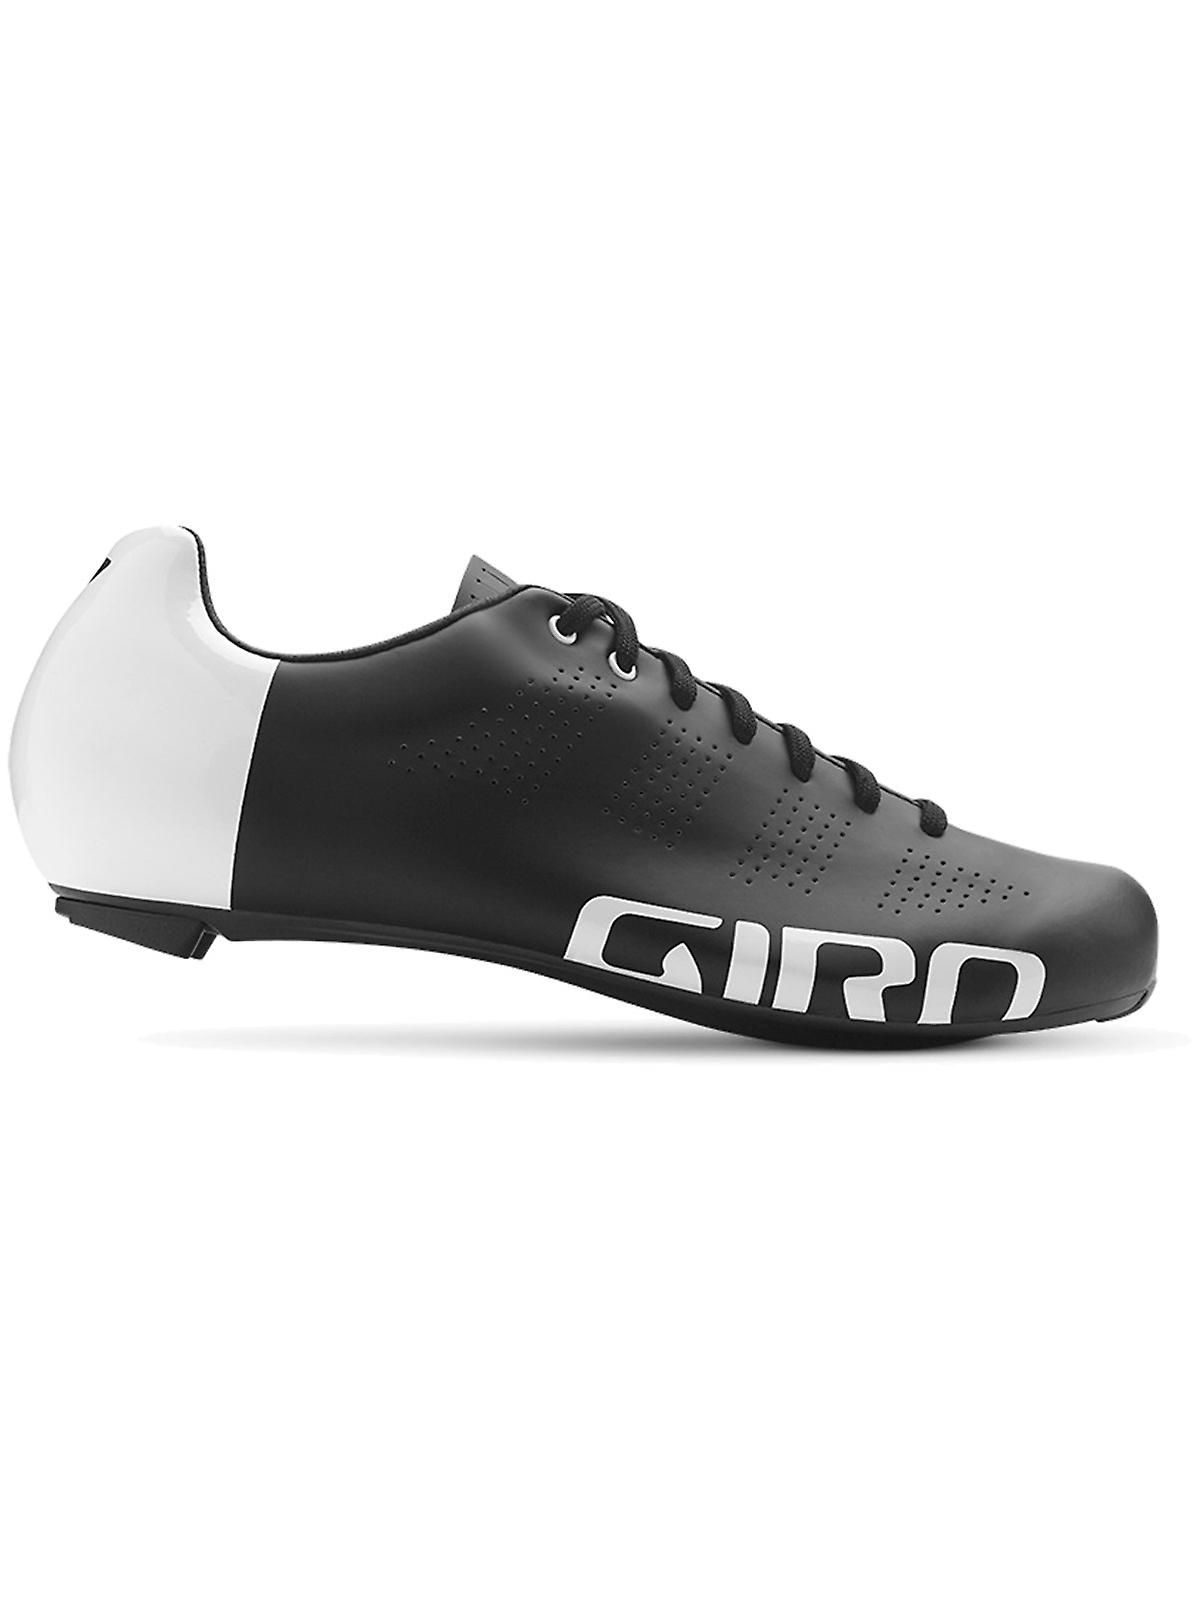 Giro Black-White Black-White Giro 2017 Empire Cycling Shoe 4c0112